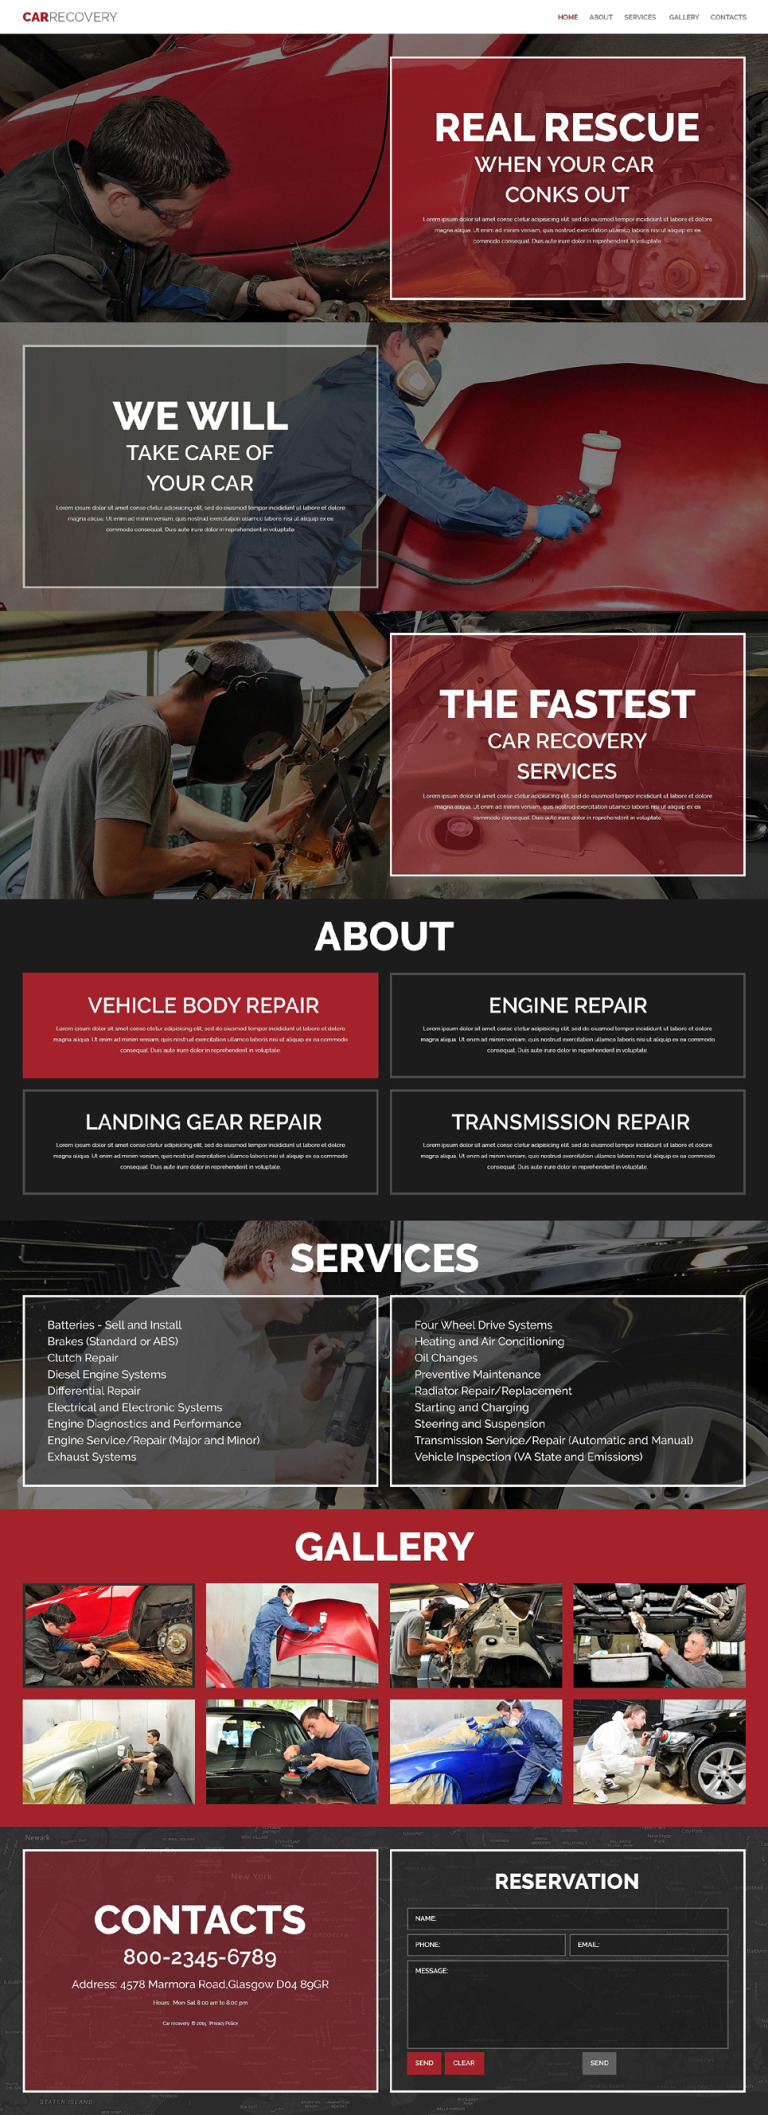 Car Repair Facility Website Template New Screenshots BIG